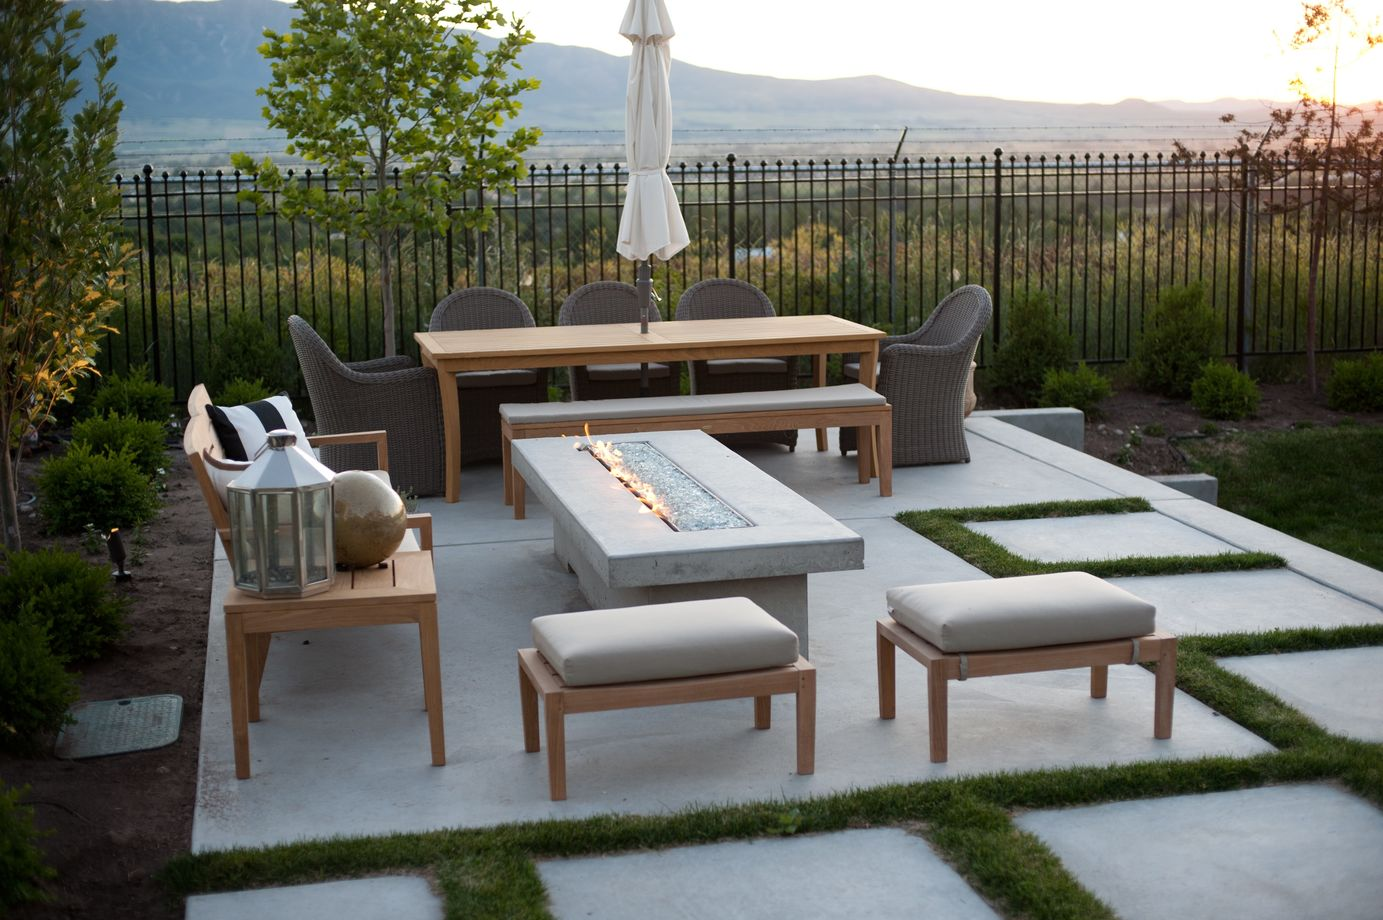 Outdoor Living: 8 Ideas To Get The Most Out Of Your Space - Porch Advice